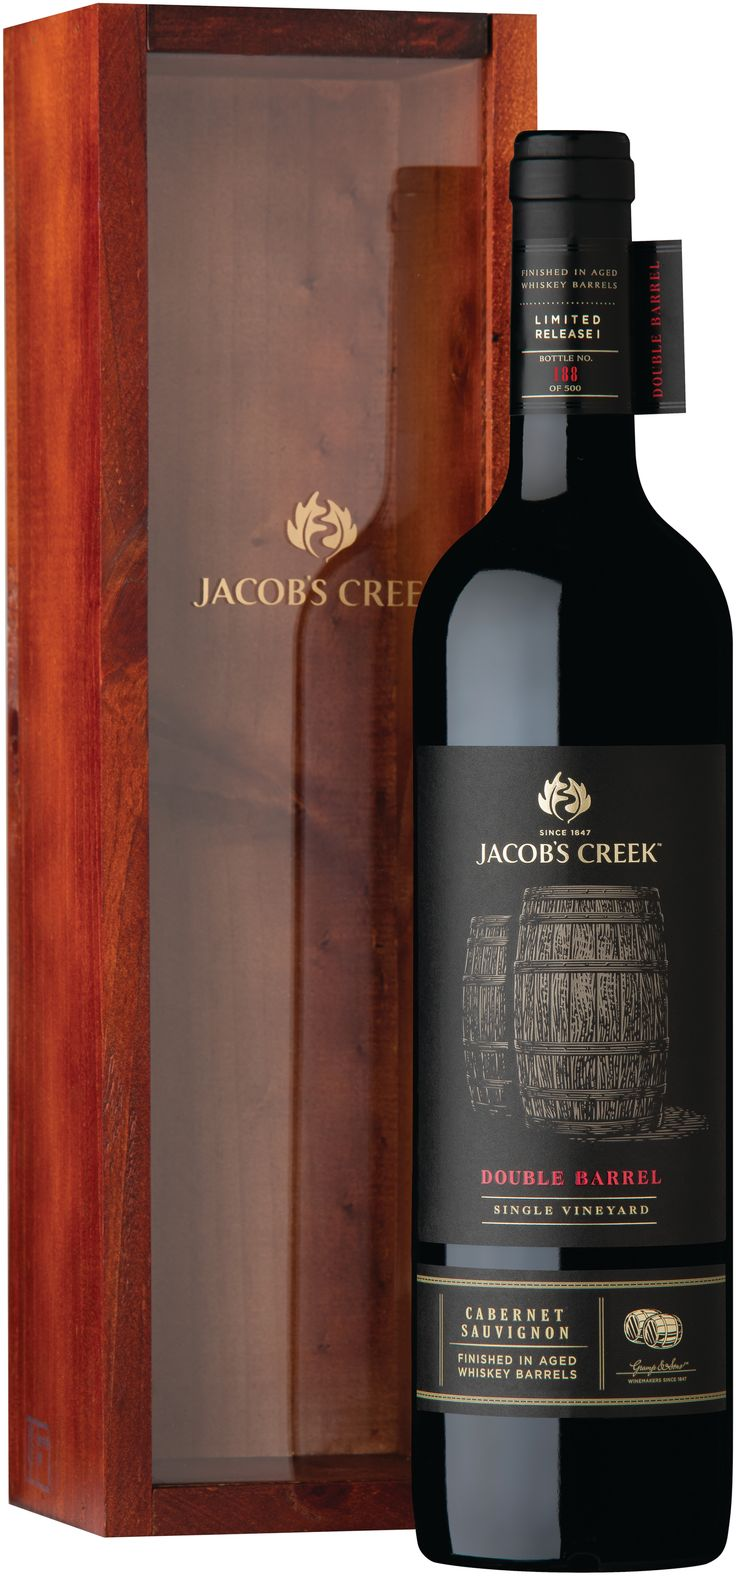 Australian wine brand JACOB'S CREEK™ launces two new limited releases exclusive to Pacific Travel Retail - JACOB'S CREEK Double Barrel Single Vineyard Shiraz and Cabernet Sauvignon